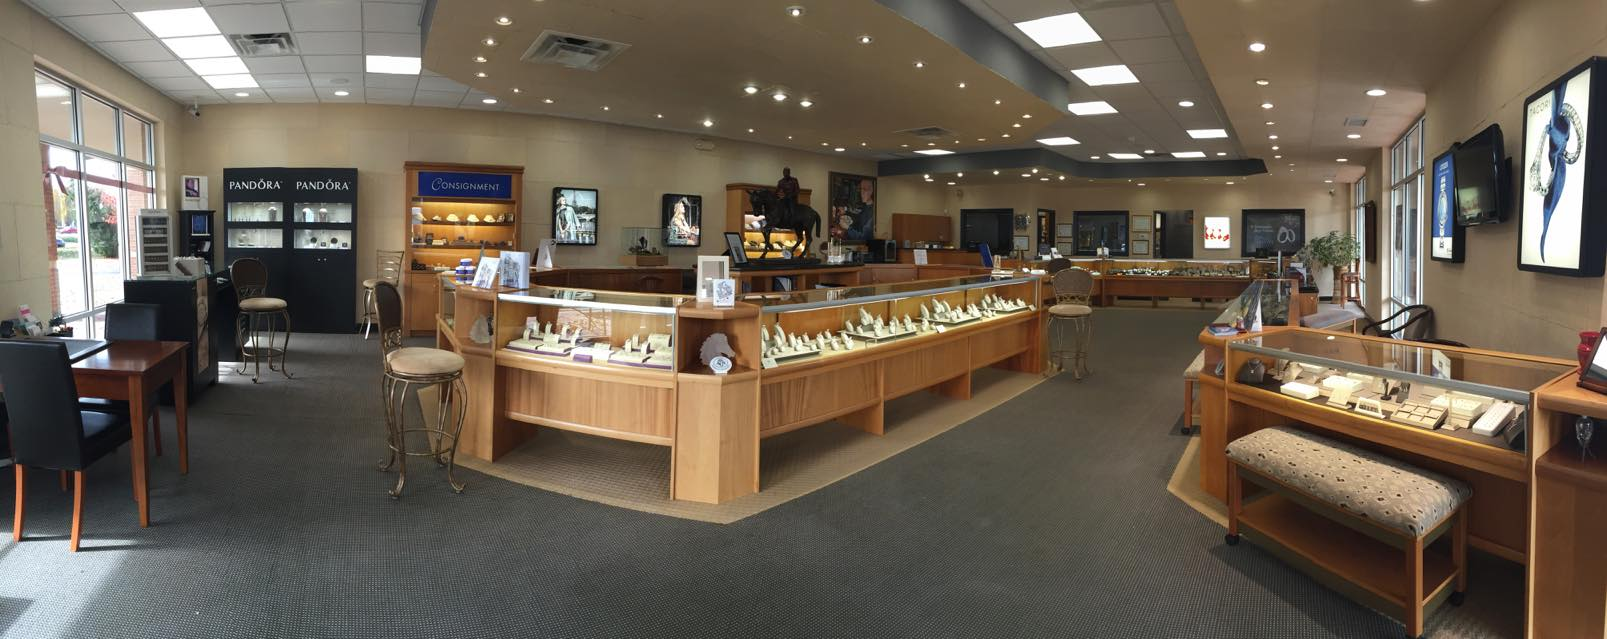 Most American jewelry shops are quite traditional with a pinch of refurbishment. Photo from a jeweler in Louisville, KY.